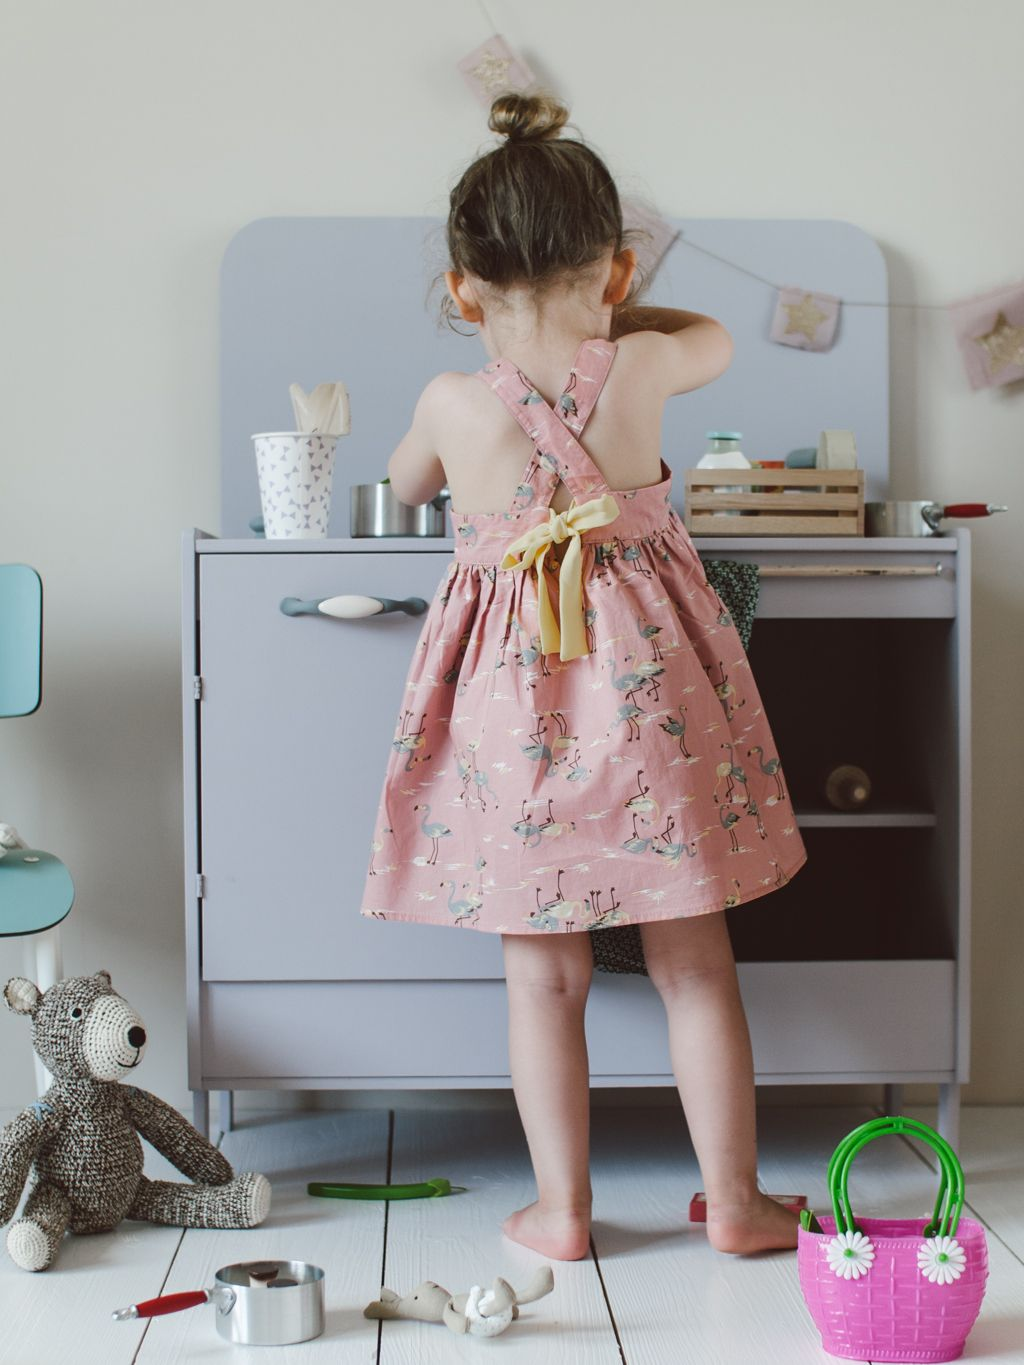 play kitchen...adorable